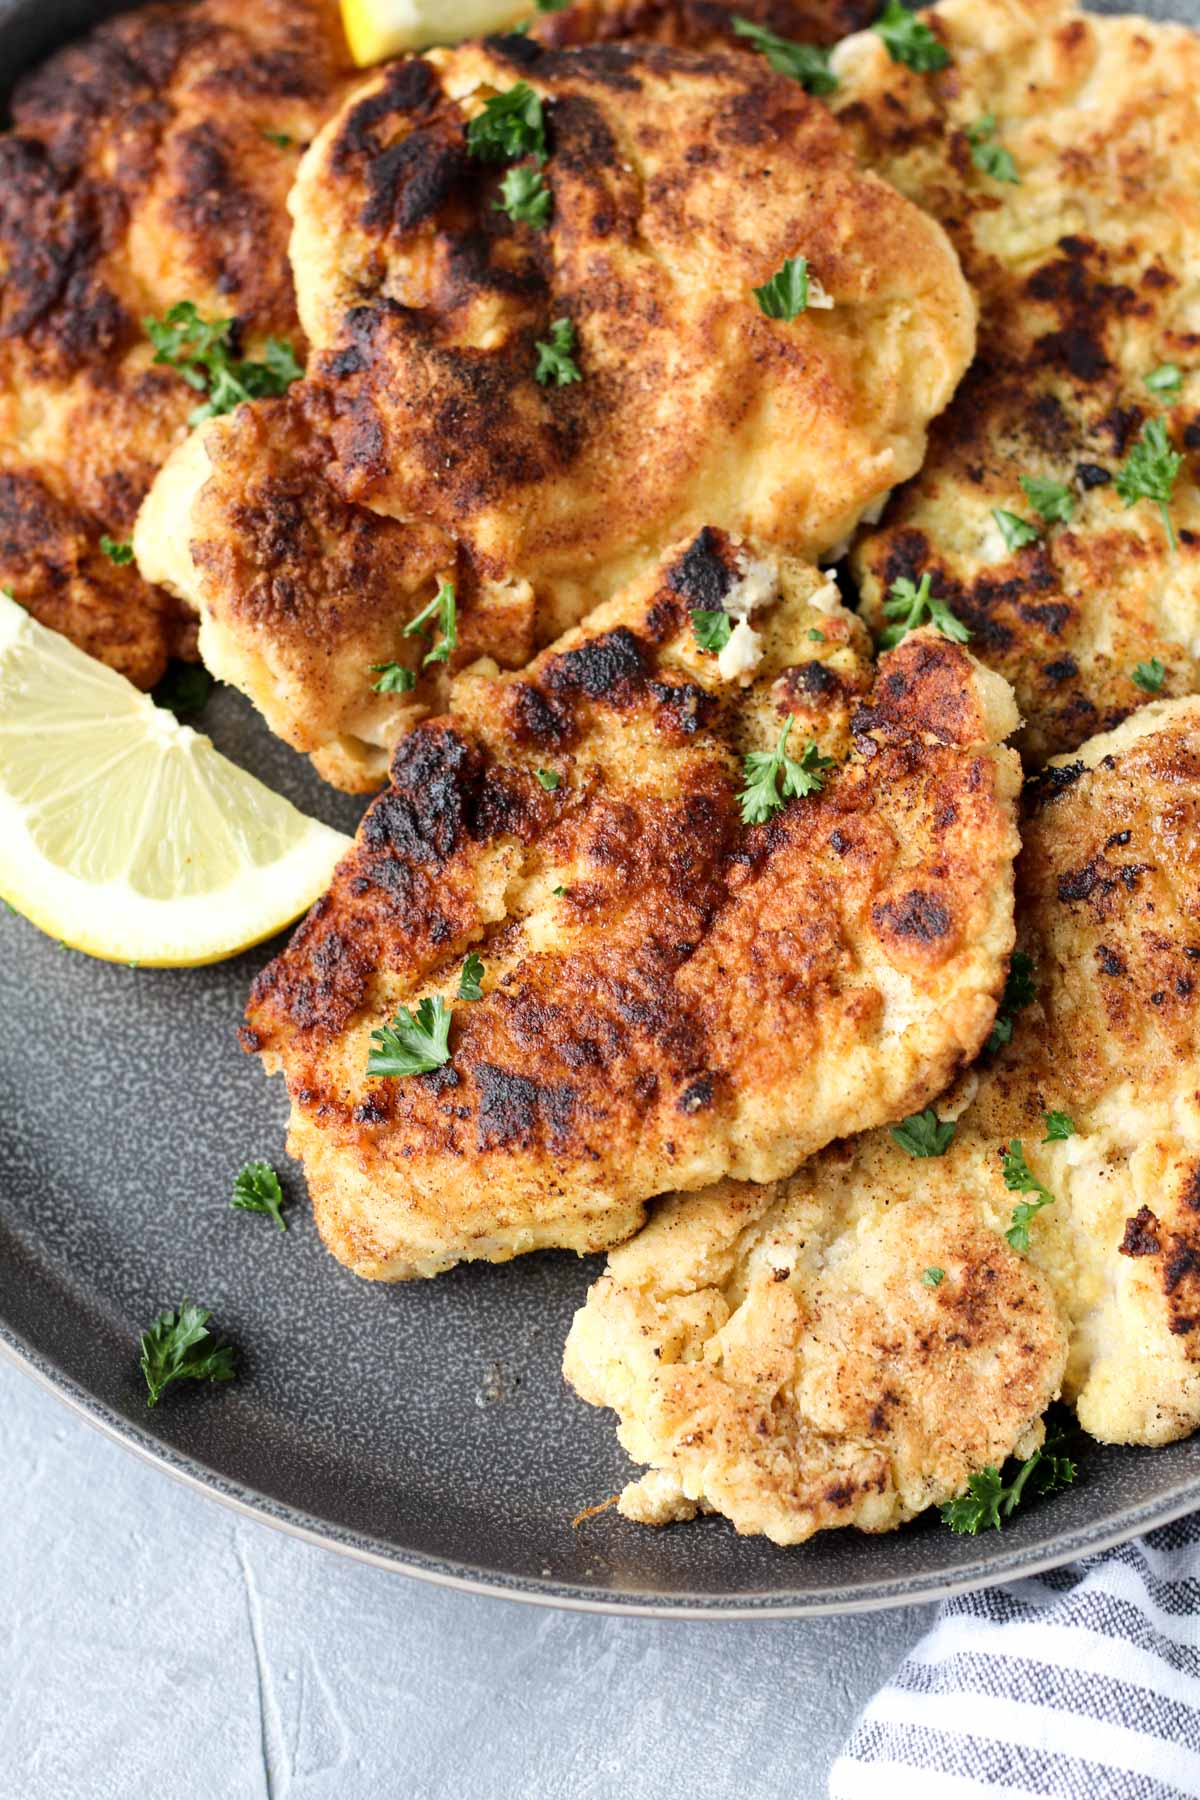 Plate of chicken cutlets.